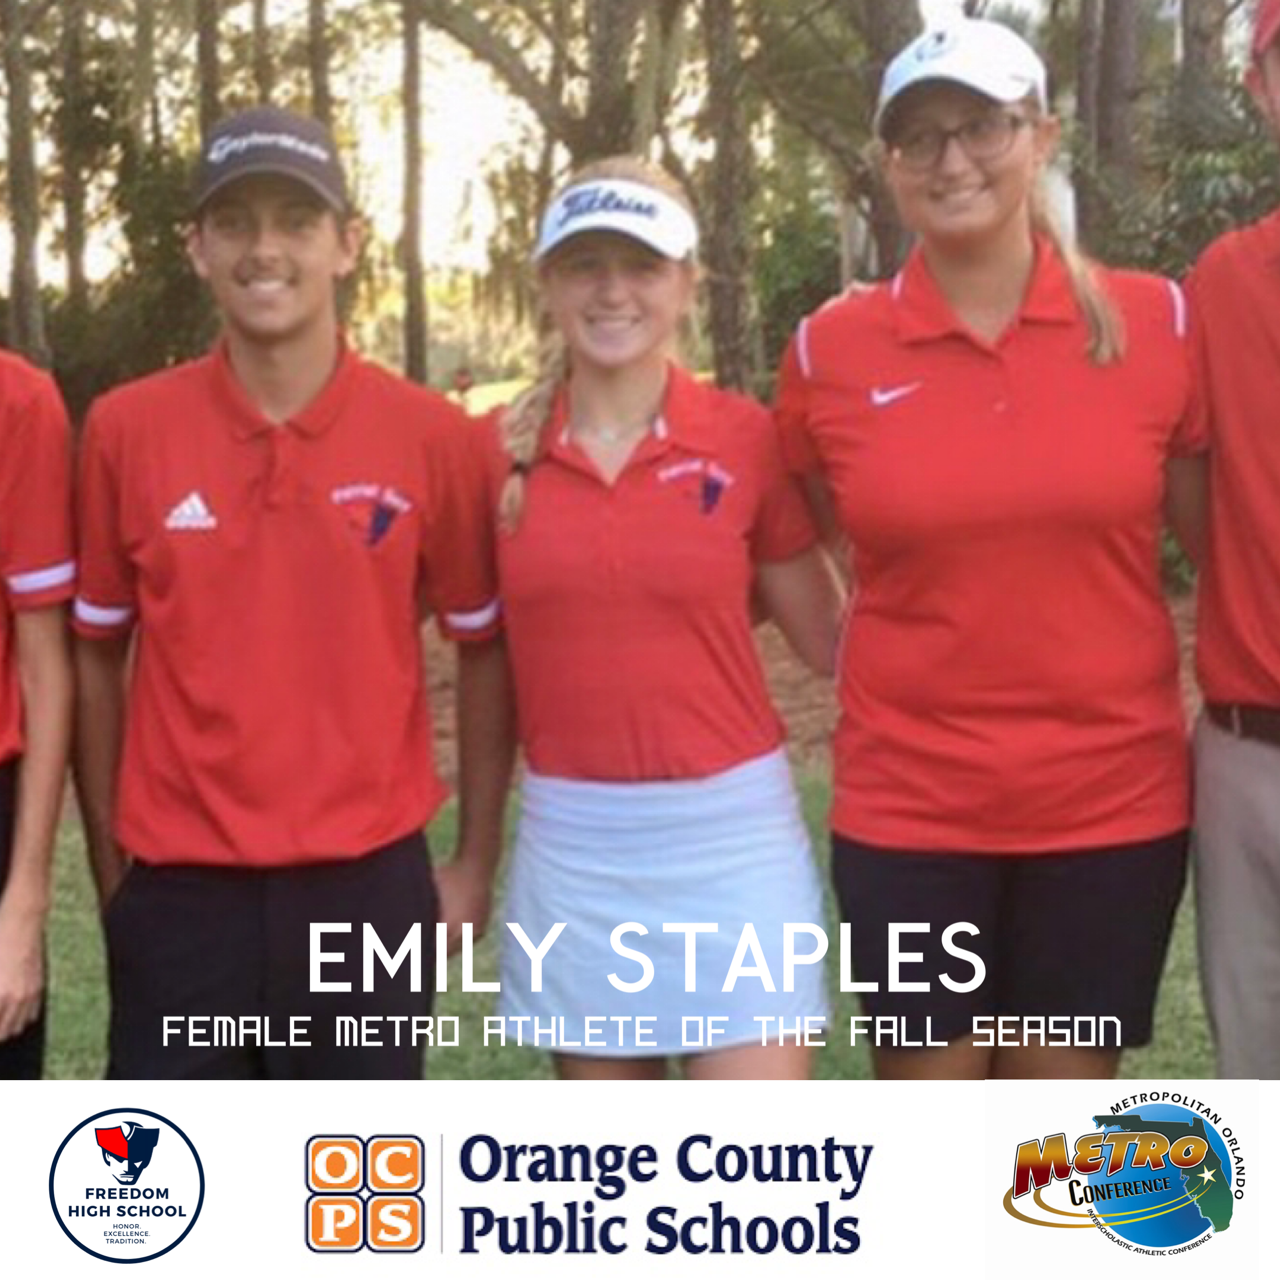 Emily Staples Named Female Metro Athlete of the Fall Season